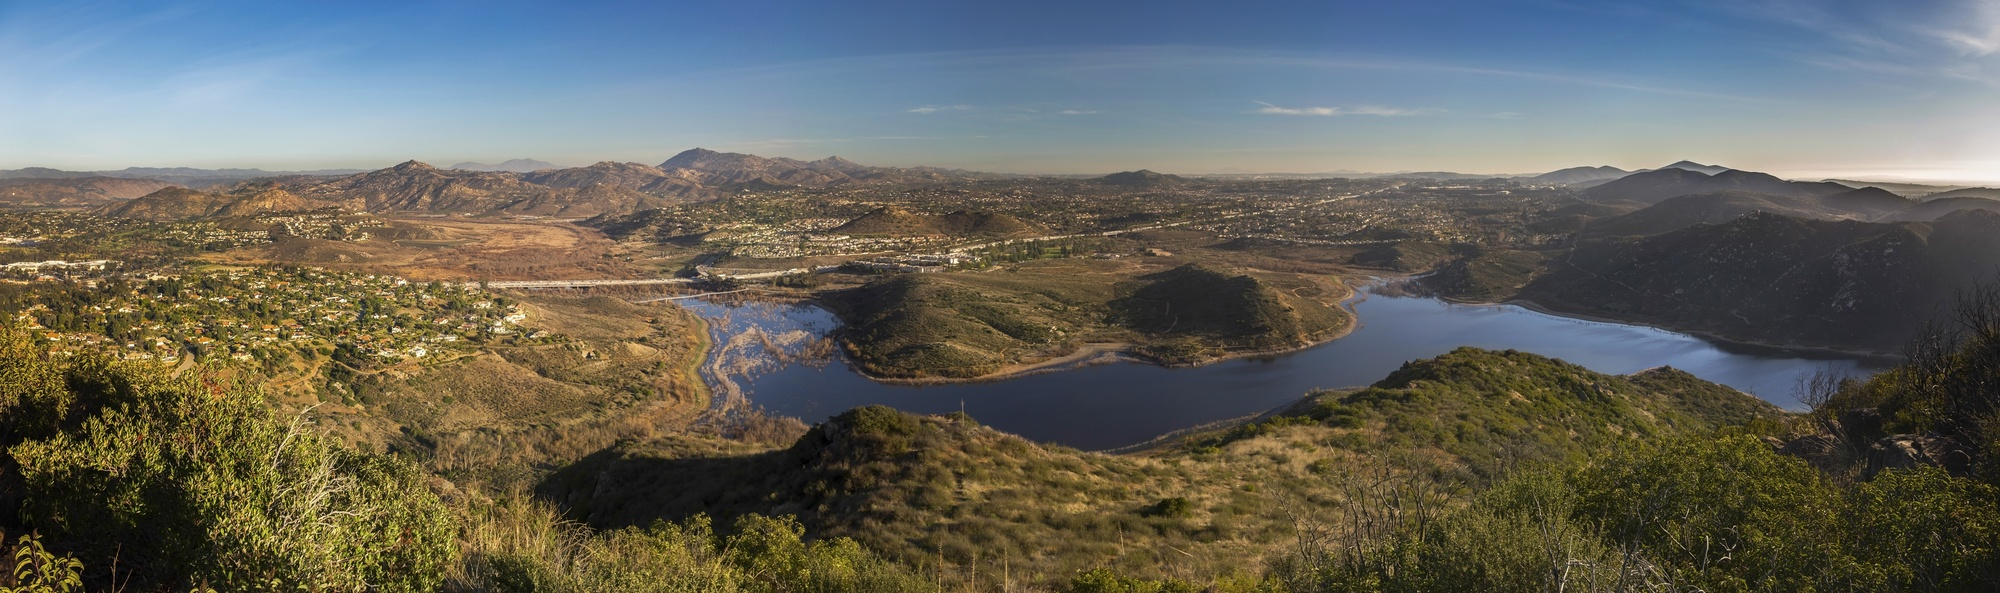 5 Fun Things to Do in Escondido